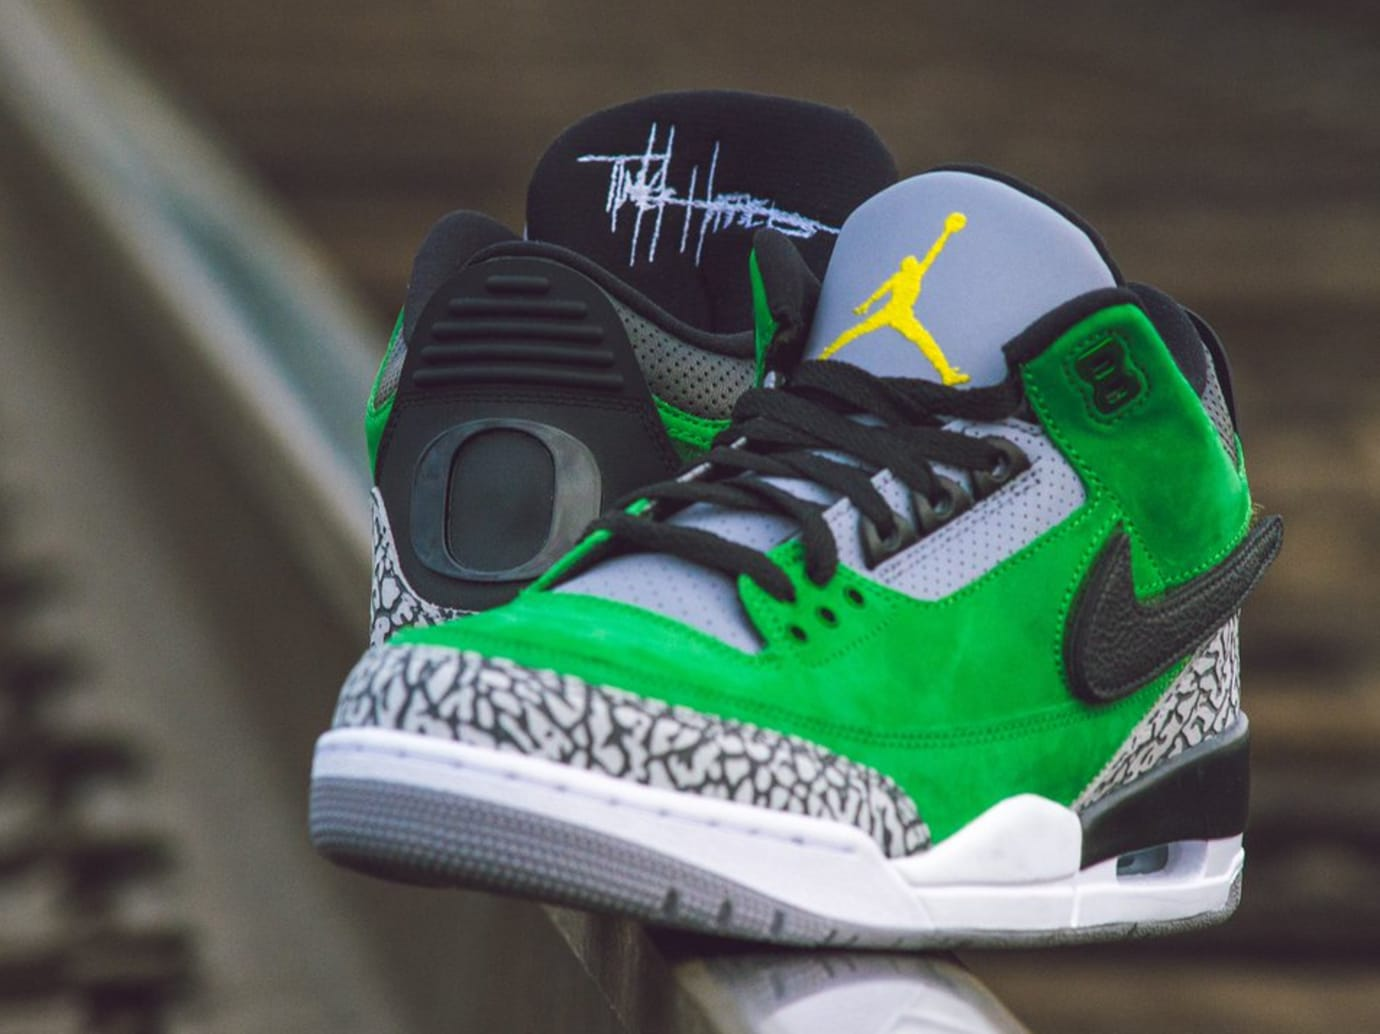 University of Oregon Air Jordan 3